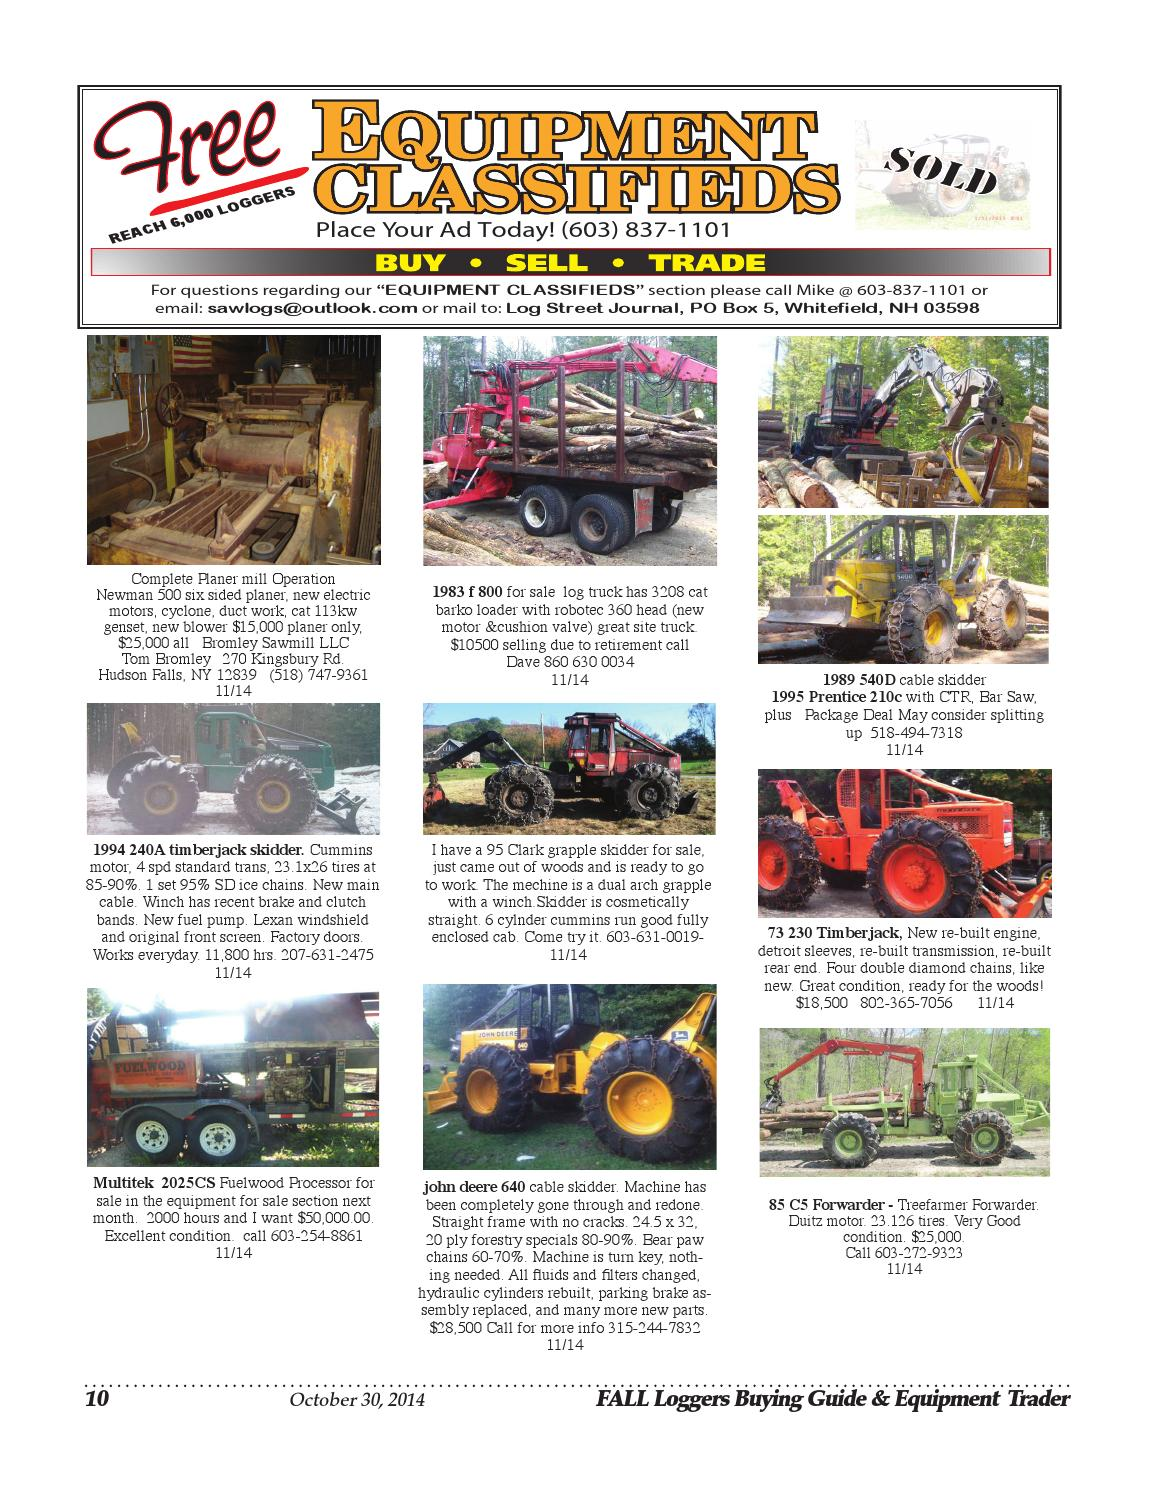 Fall Loggers Buying Guide 2014 by Log Street Publishers, LLC - issuu